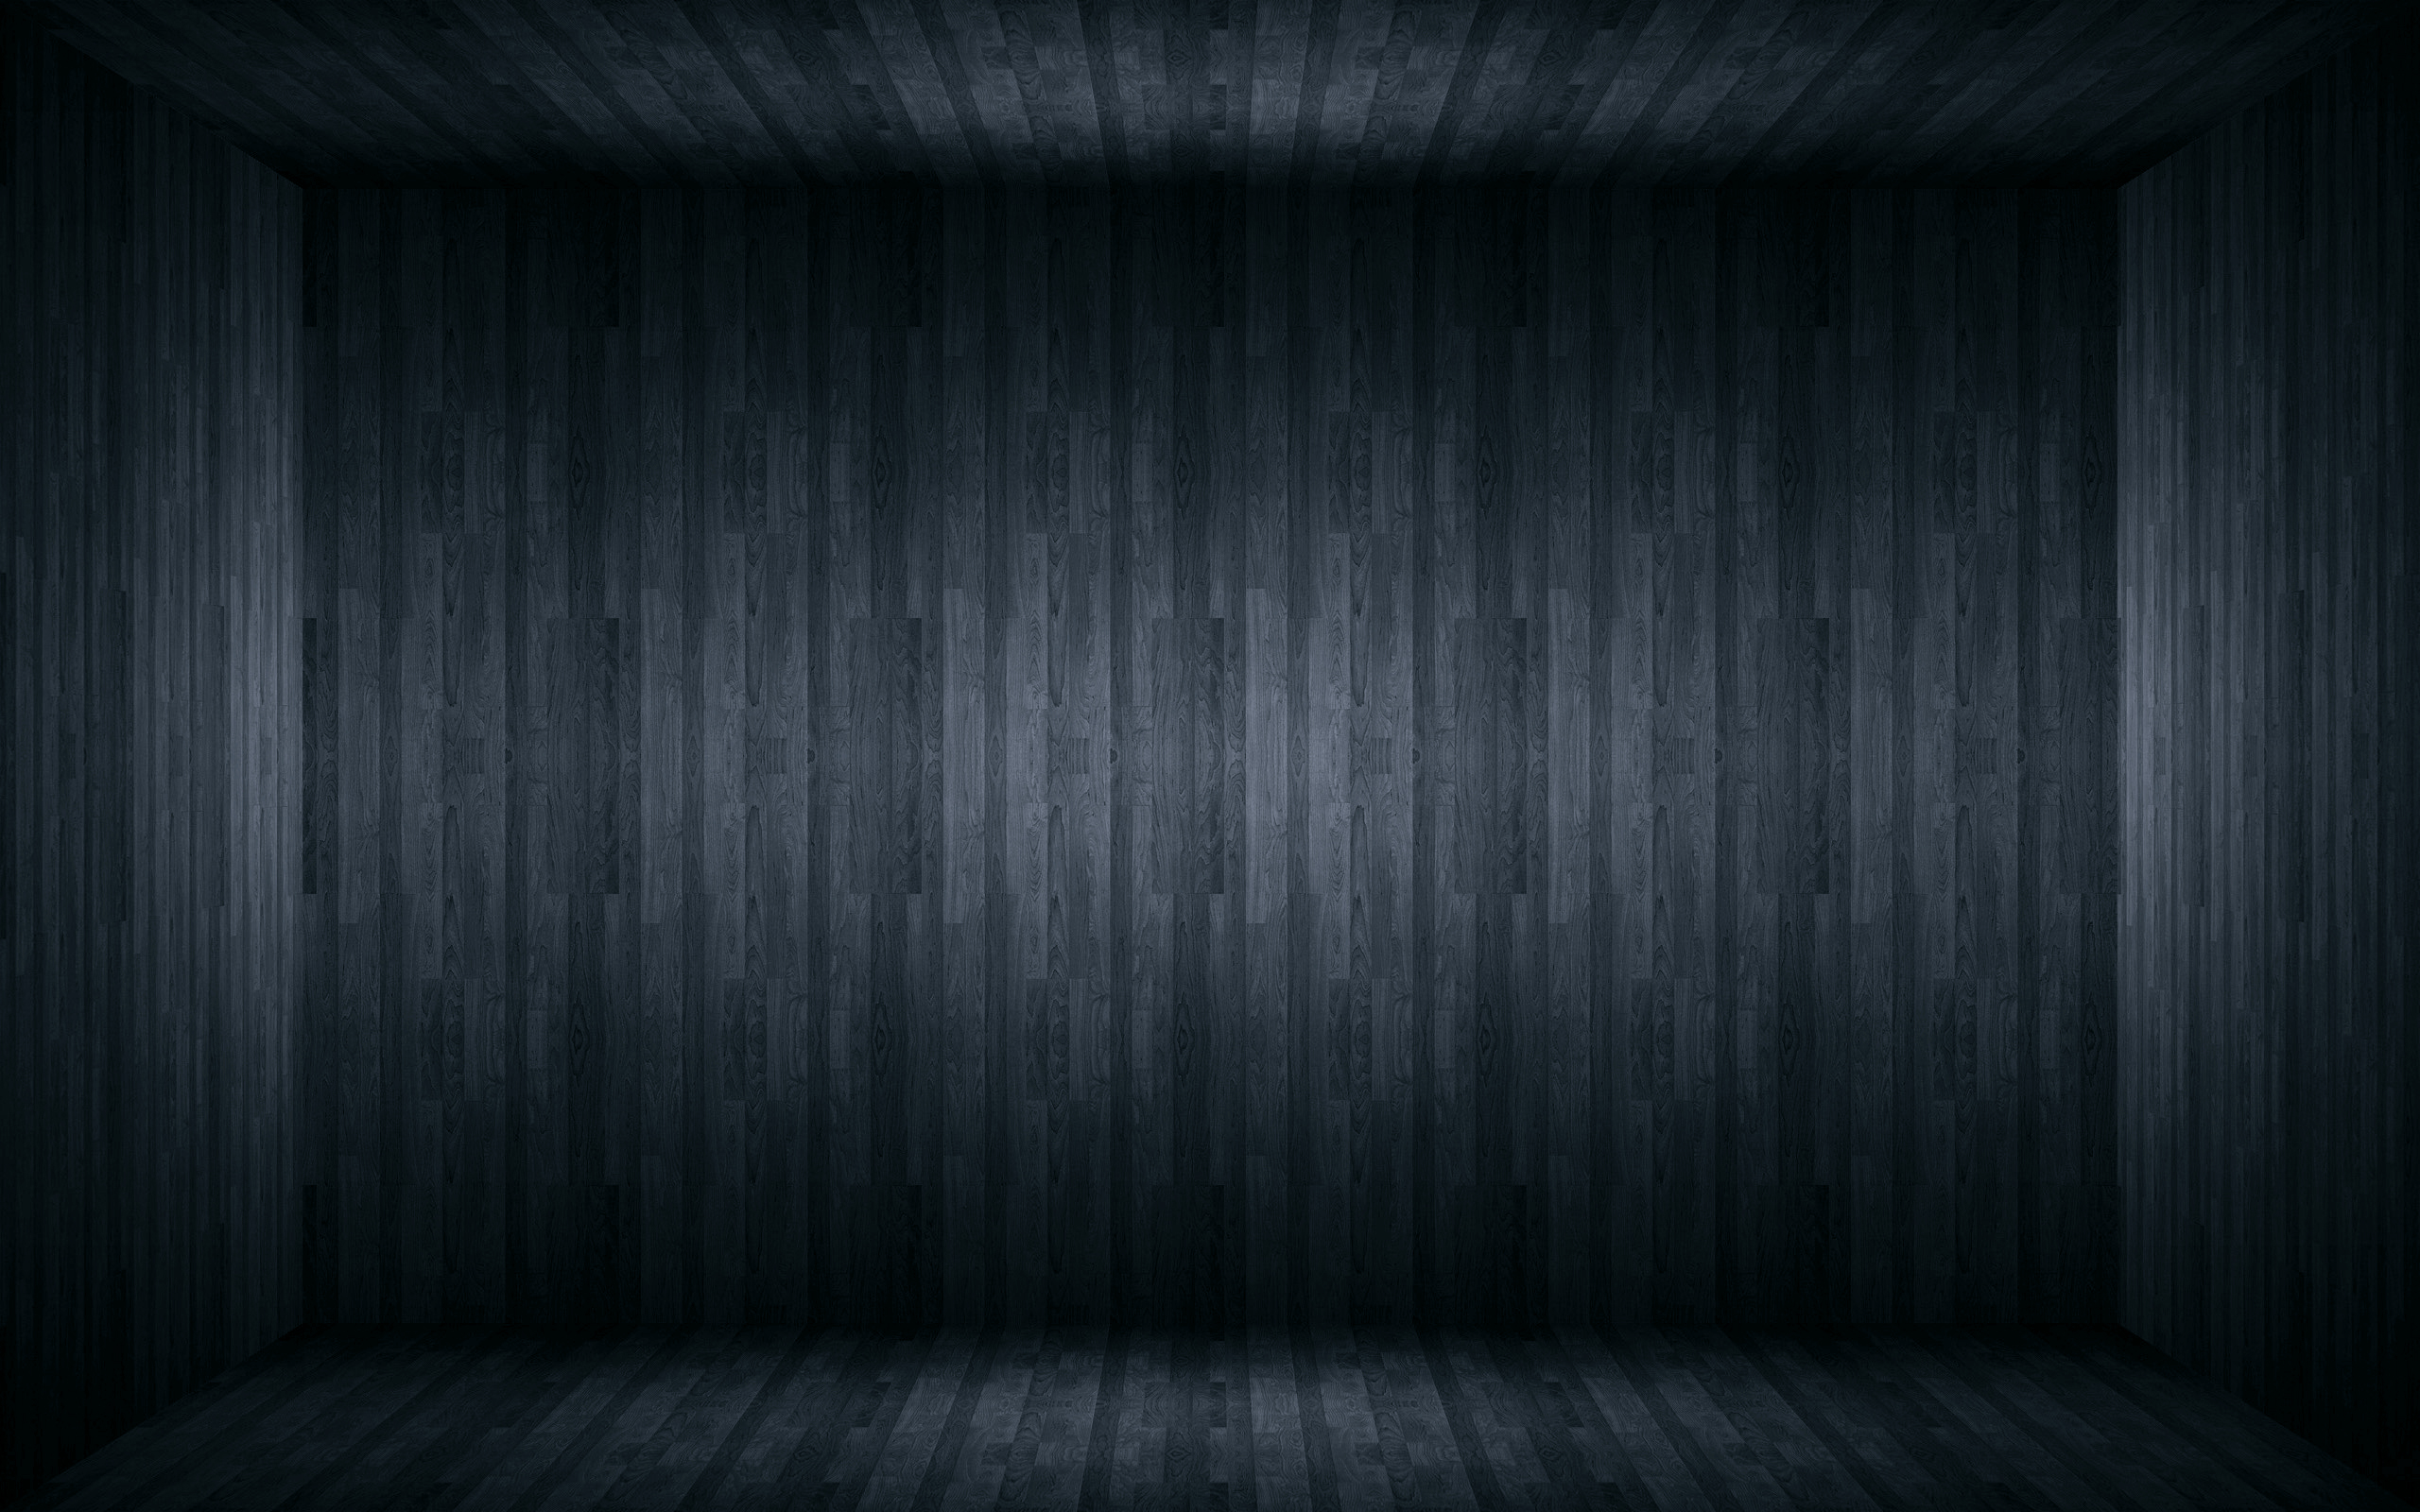 3D Texture Wallpaper - WallpaperSafari